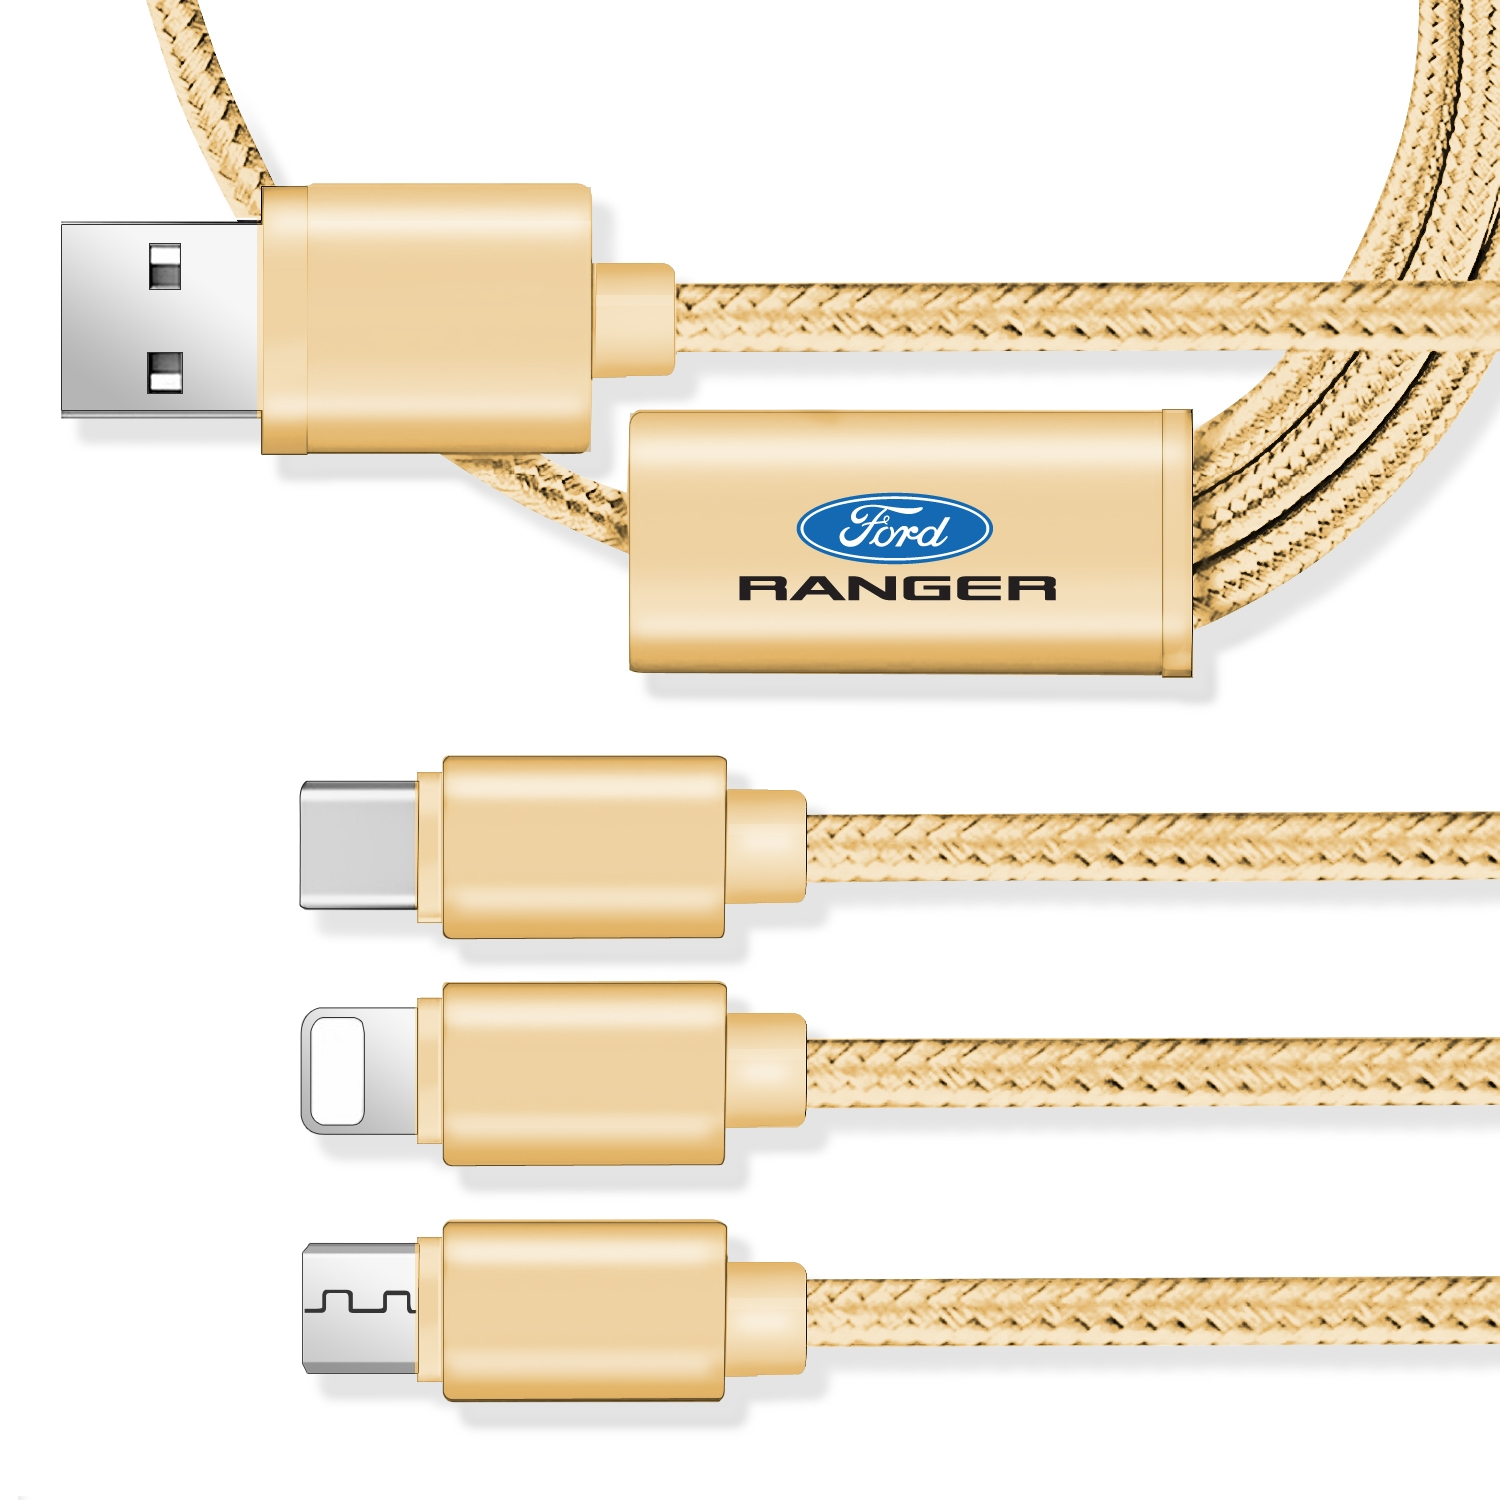 Ford Ranger 3 in 1 Golden 4 Ft Premium Multi Charging Cord USB Cable